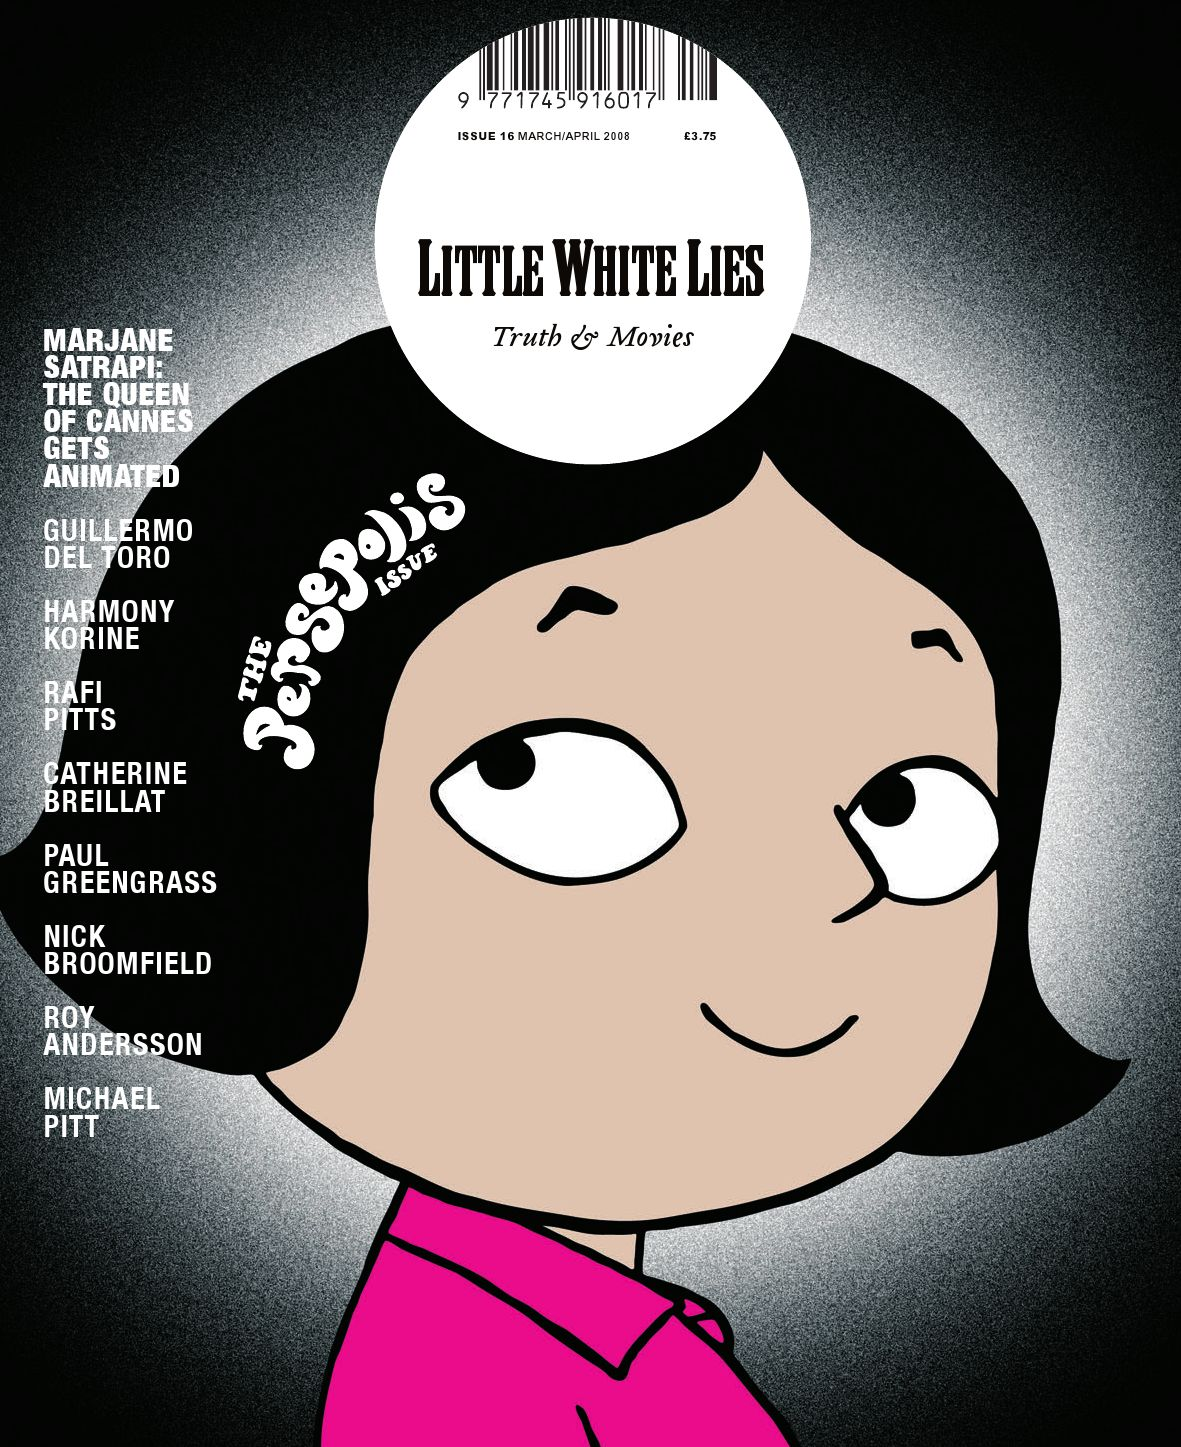 Little White Lies 16 The Persepolis Issue By The Church Of London Issuu